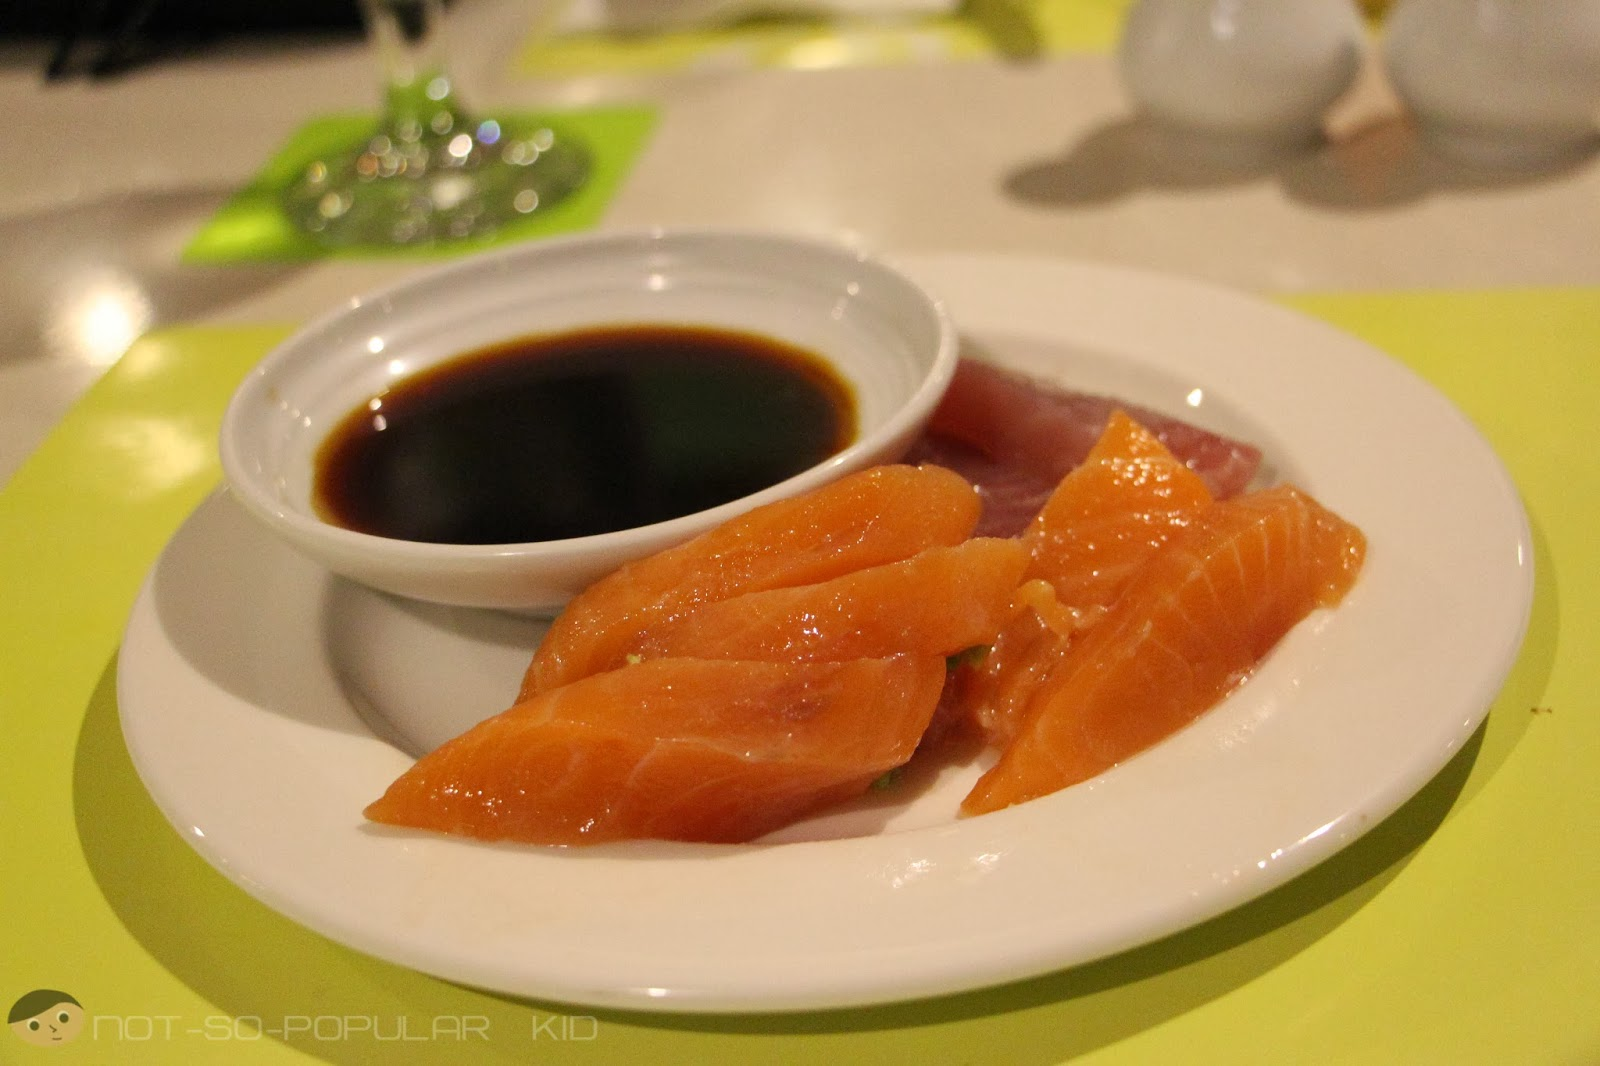 A plateful of Salmon and Tuna Sashimi - perfect for the night!